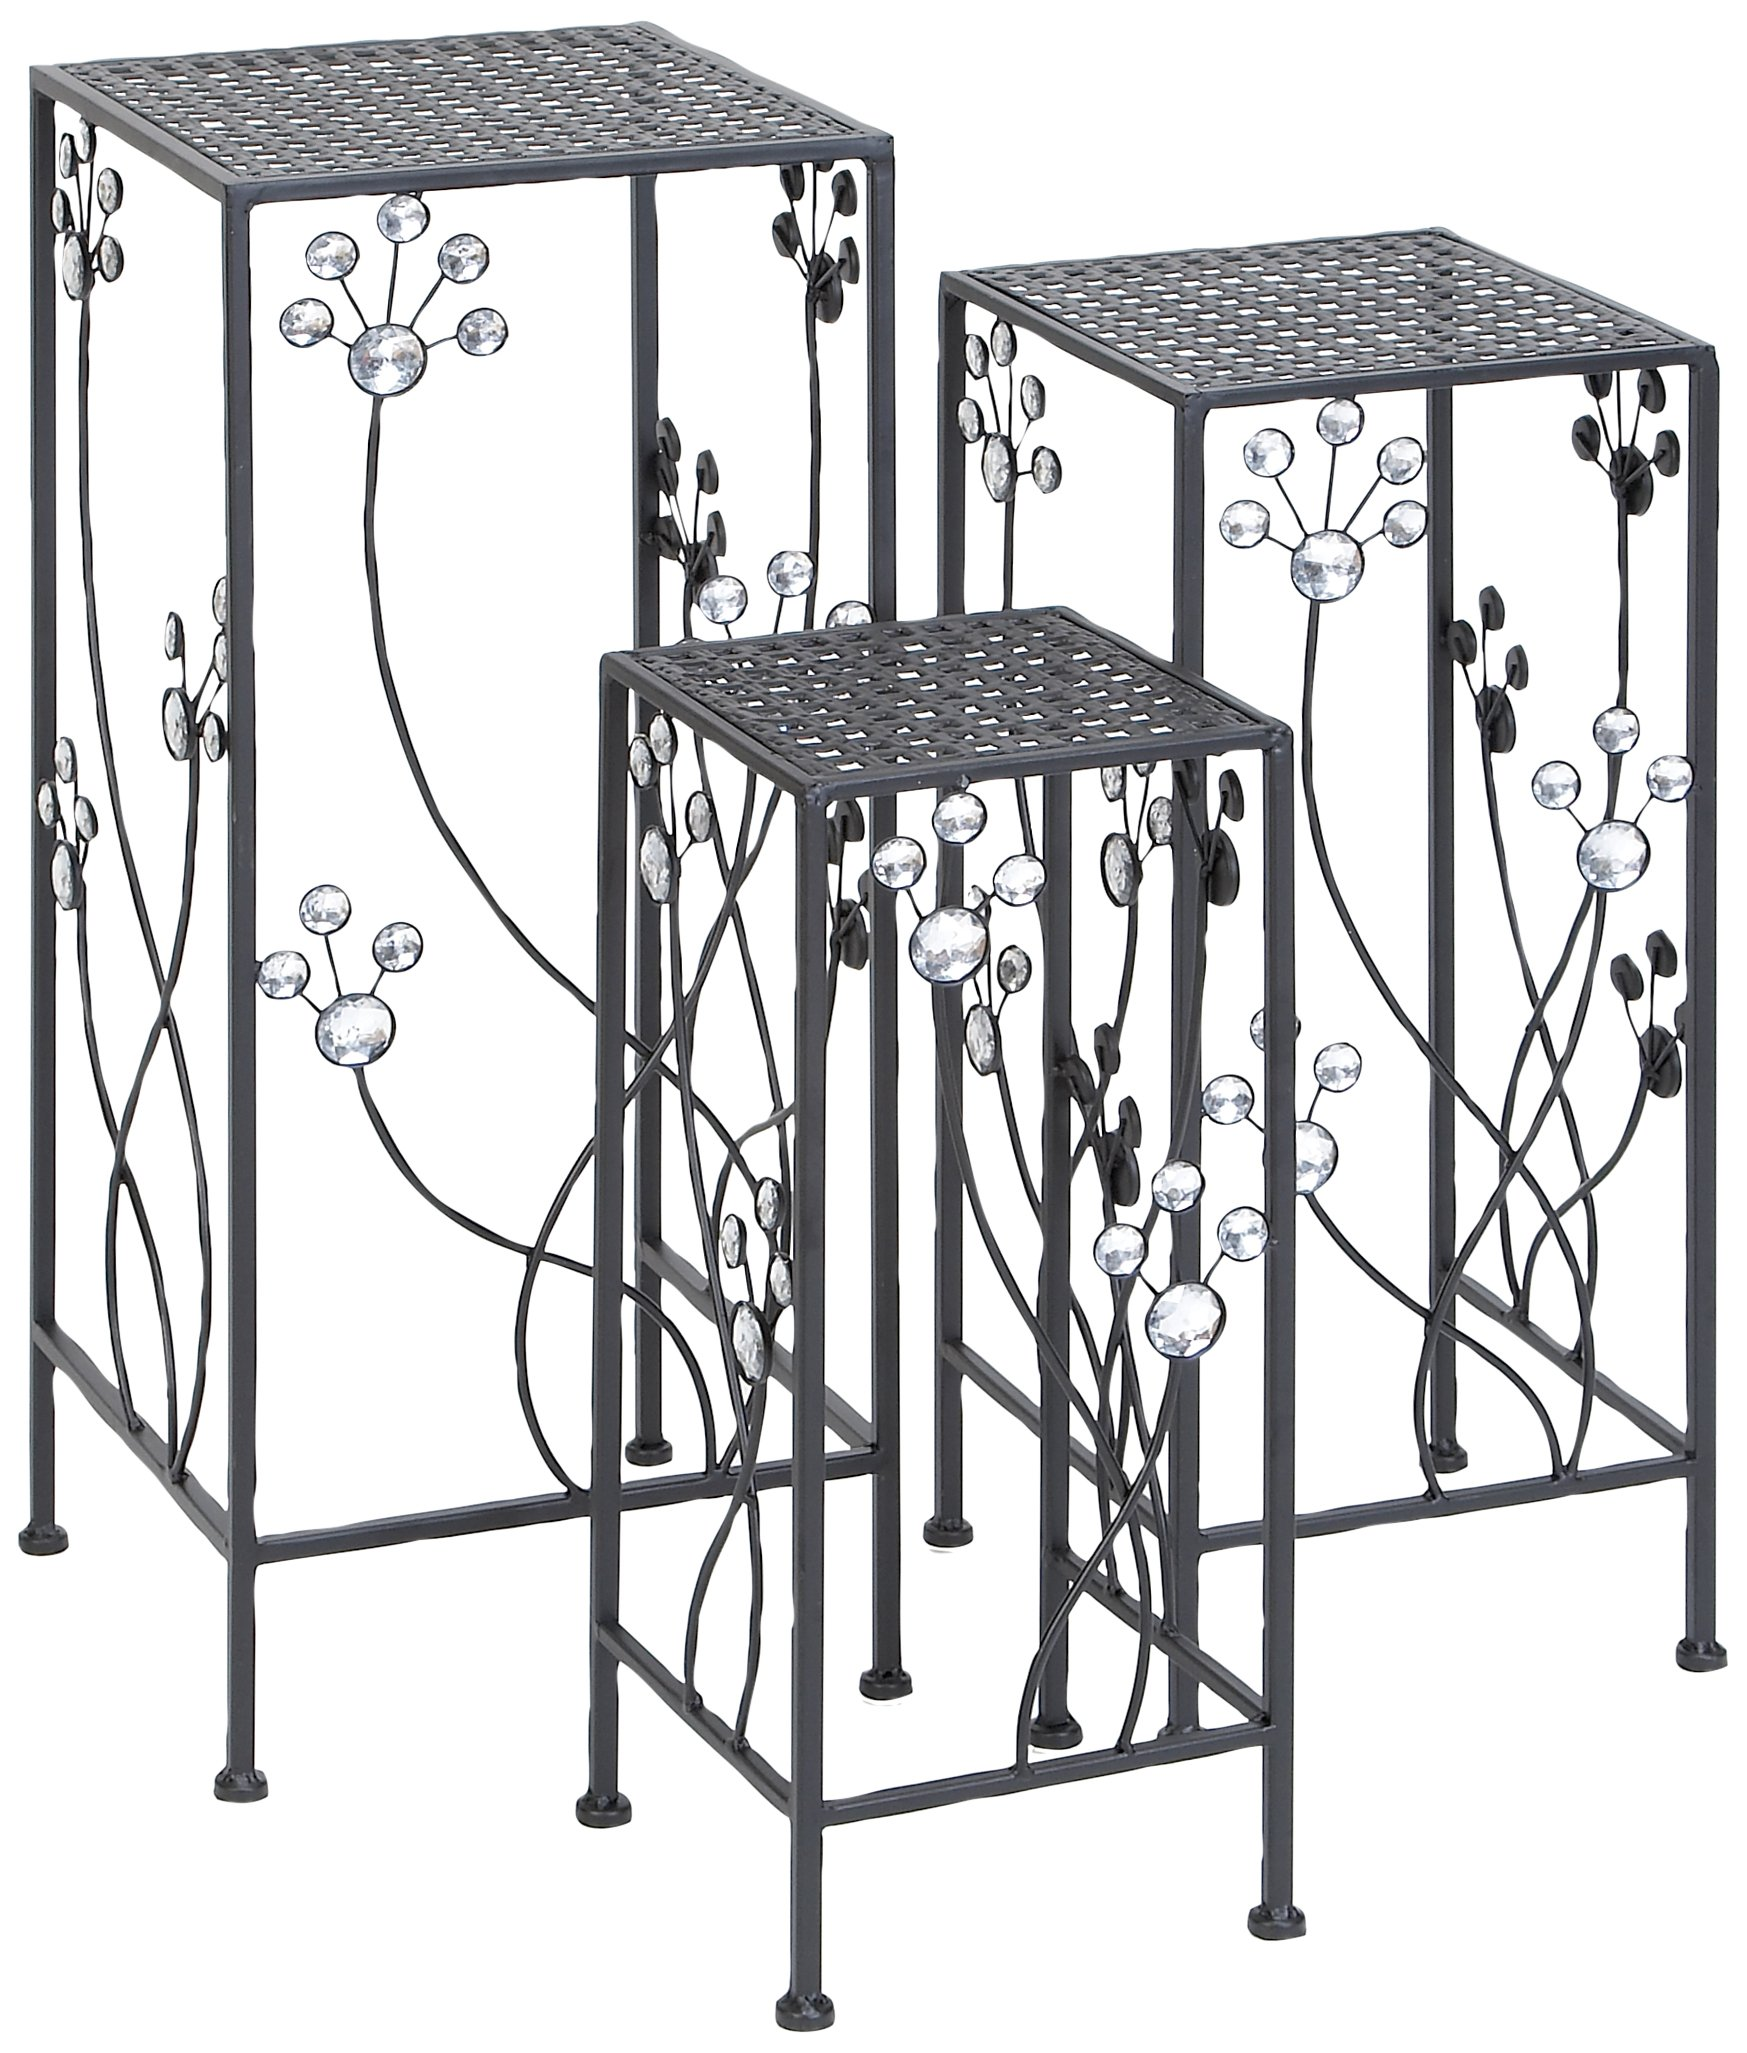 Deco 79 63344 3-Piece Metal Outdoor Plant Stand Set, Square